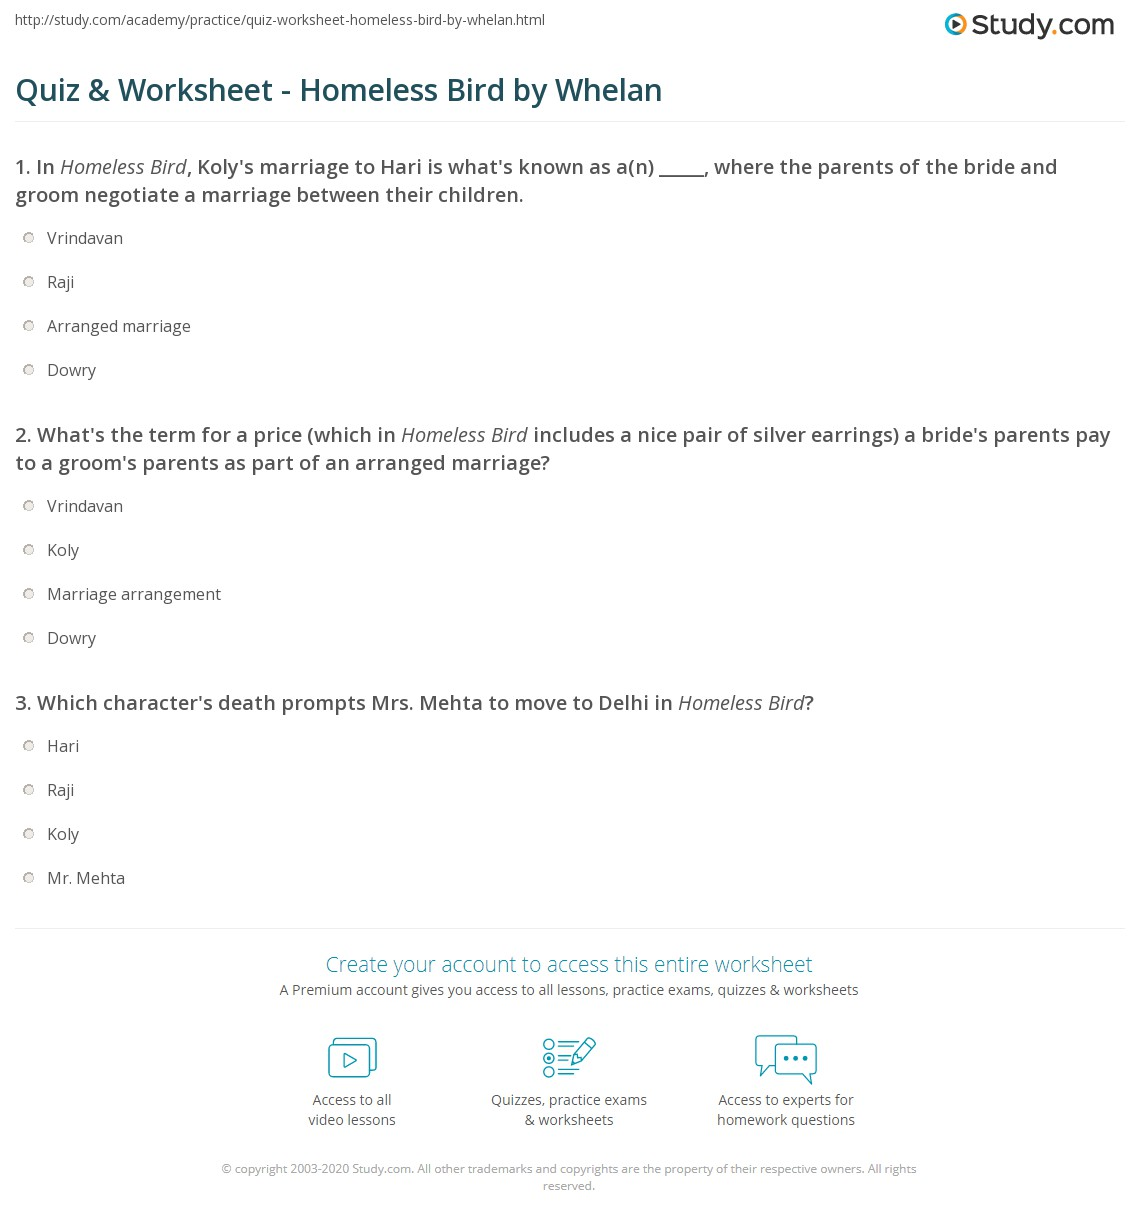 Quiz Worksheet Homeless Bird By Whelan Study Com